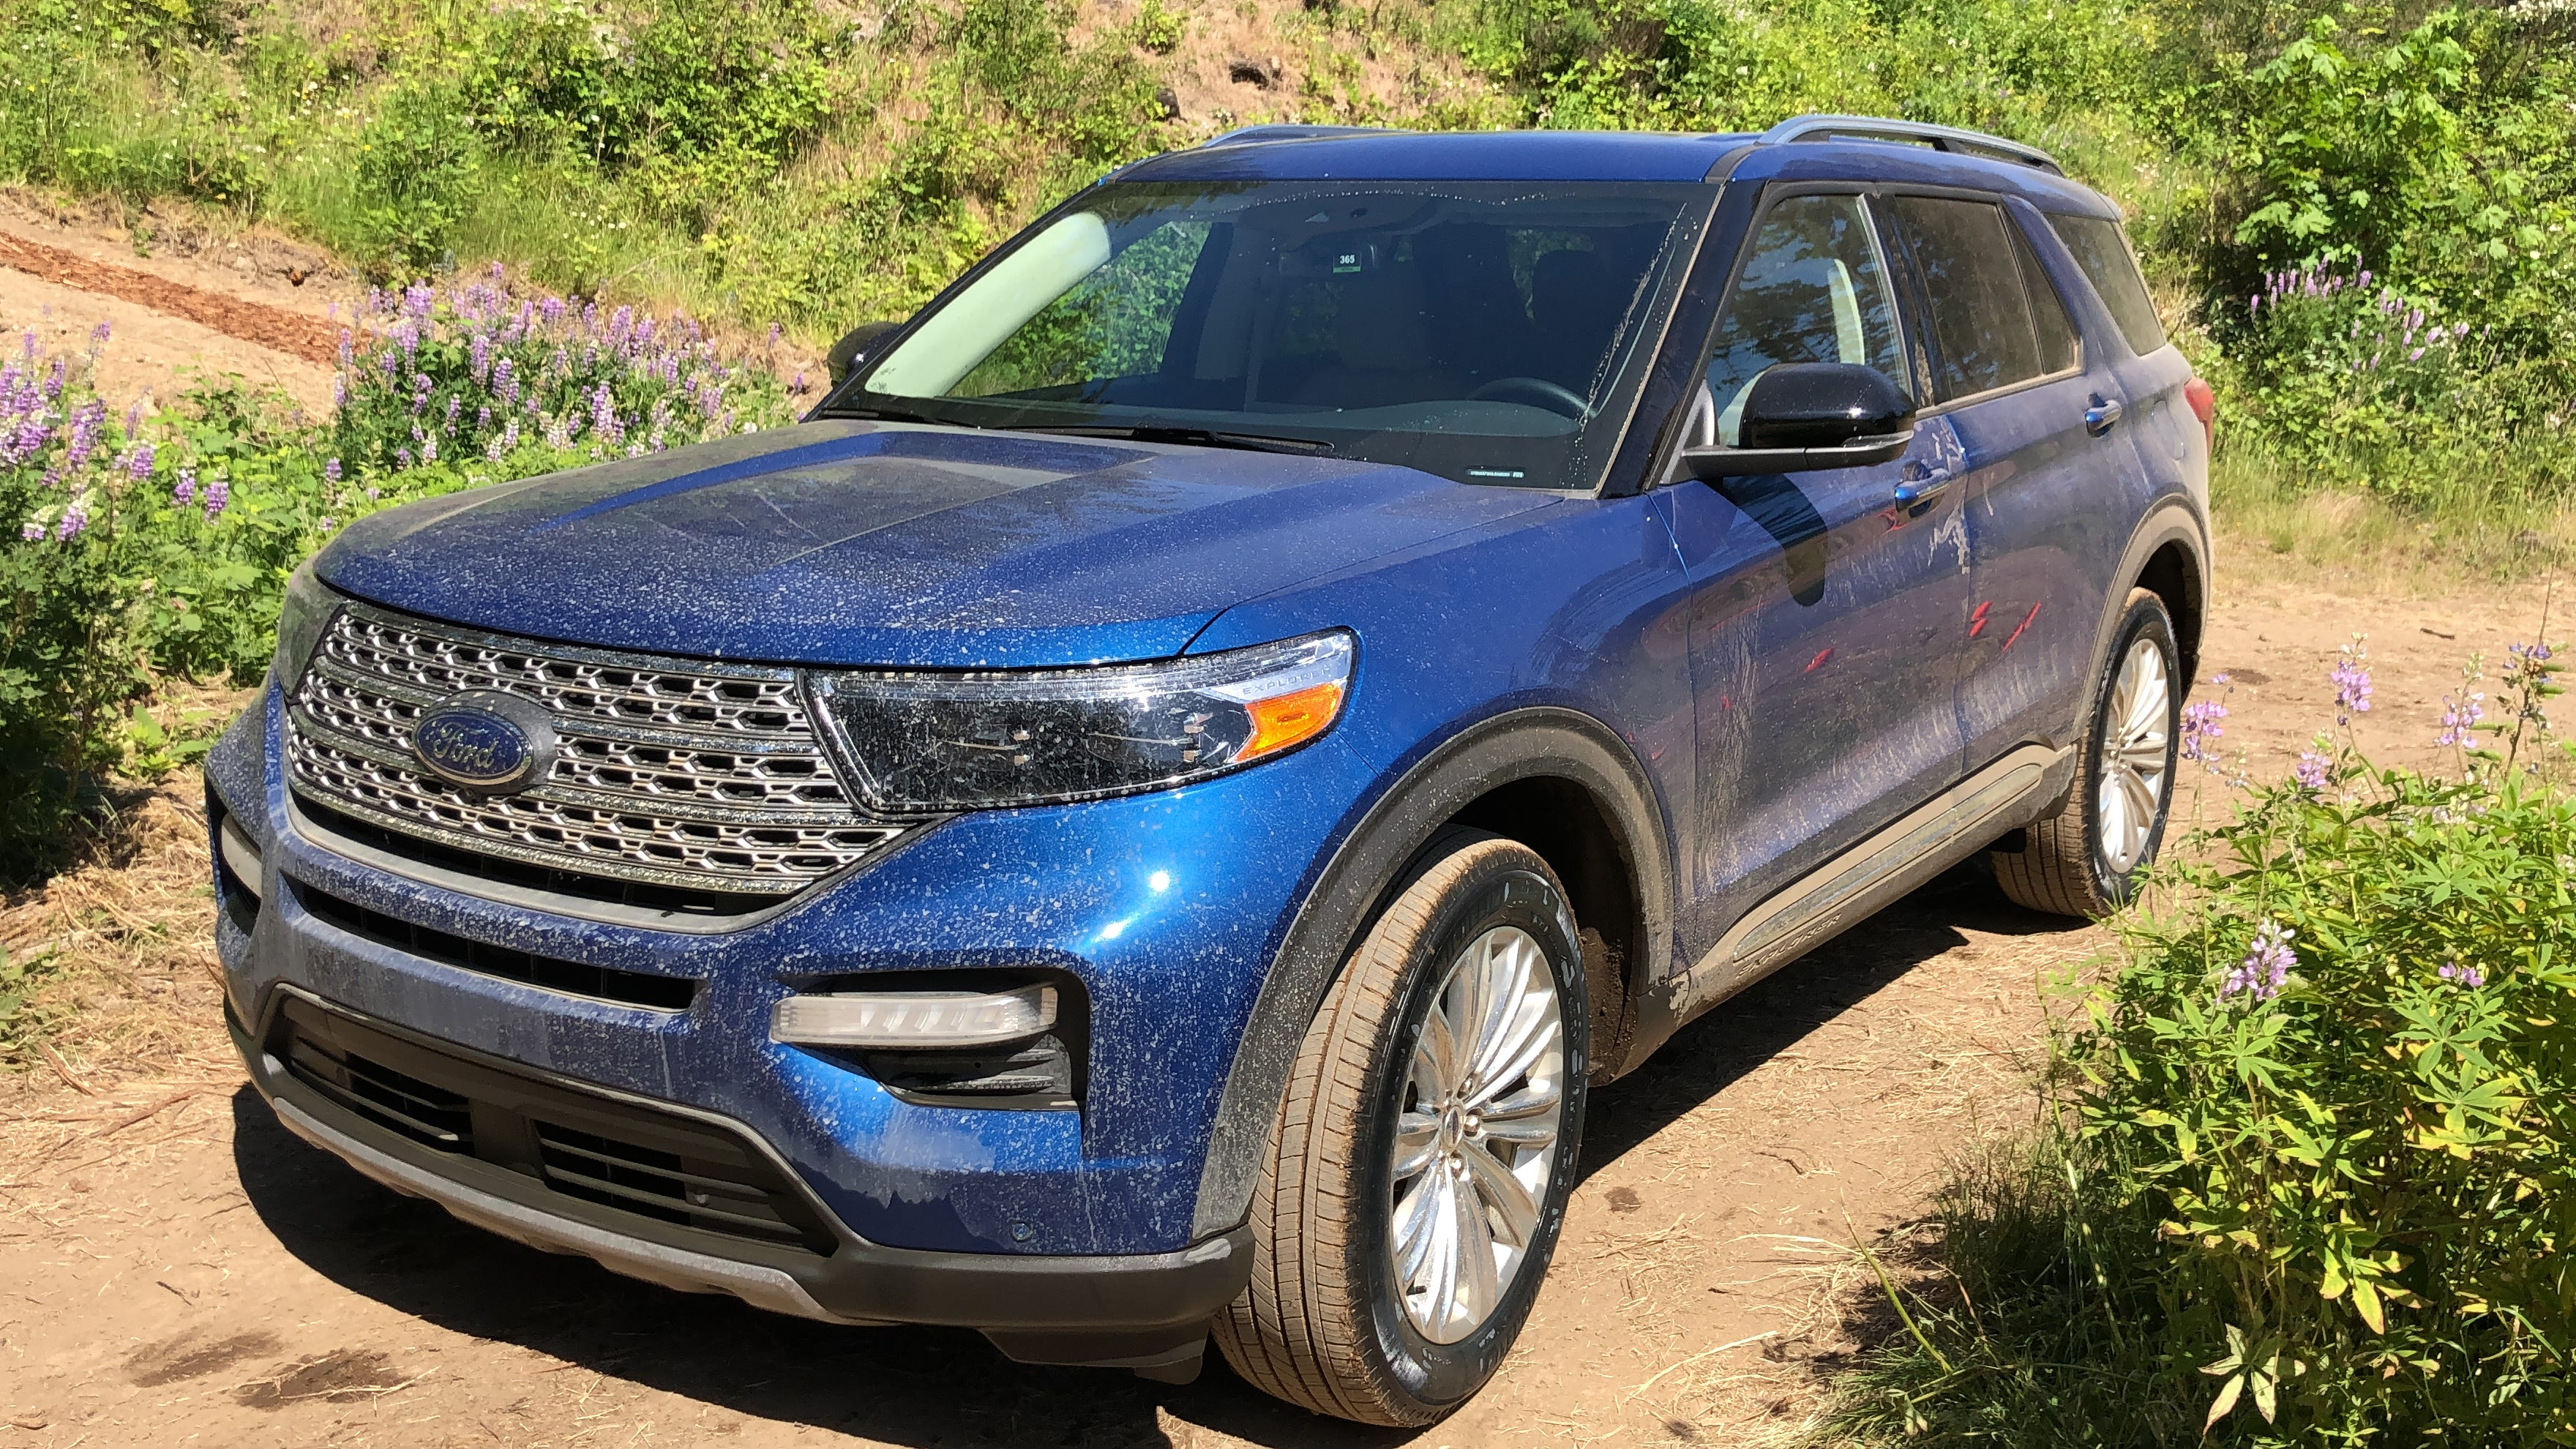 Ford explorer deal – Law Breaking News